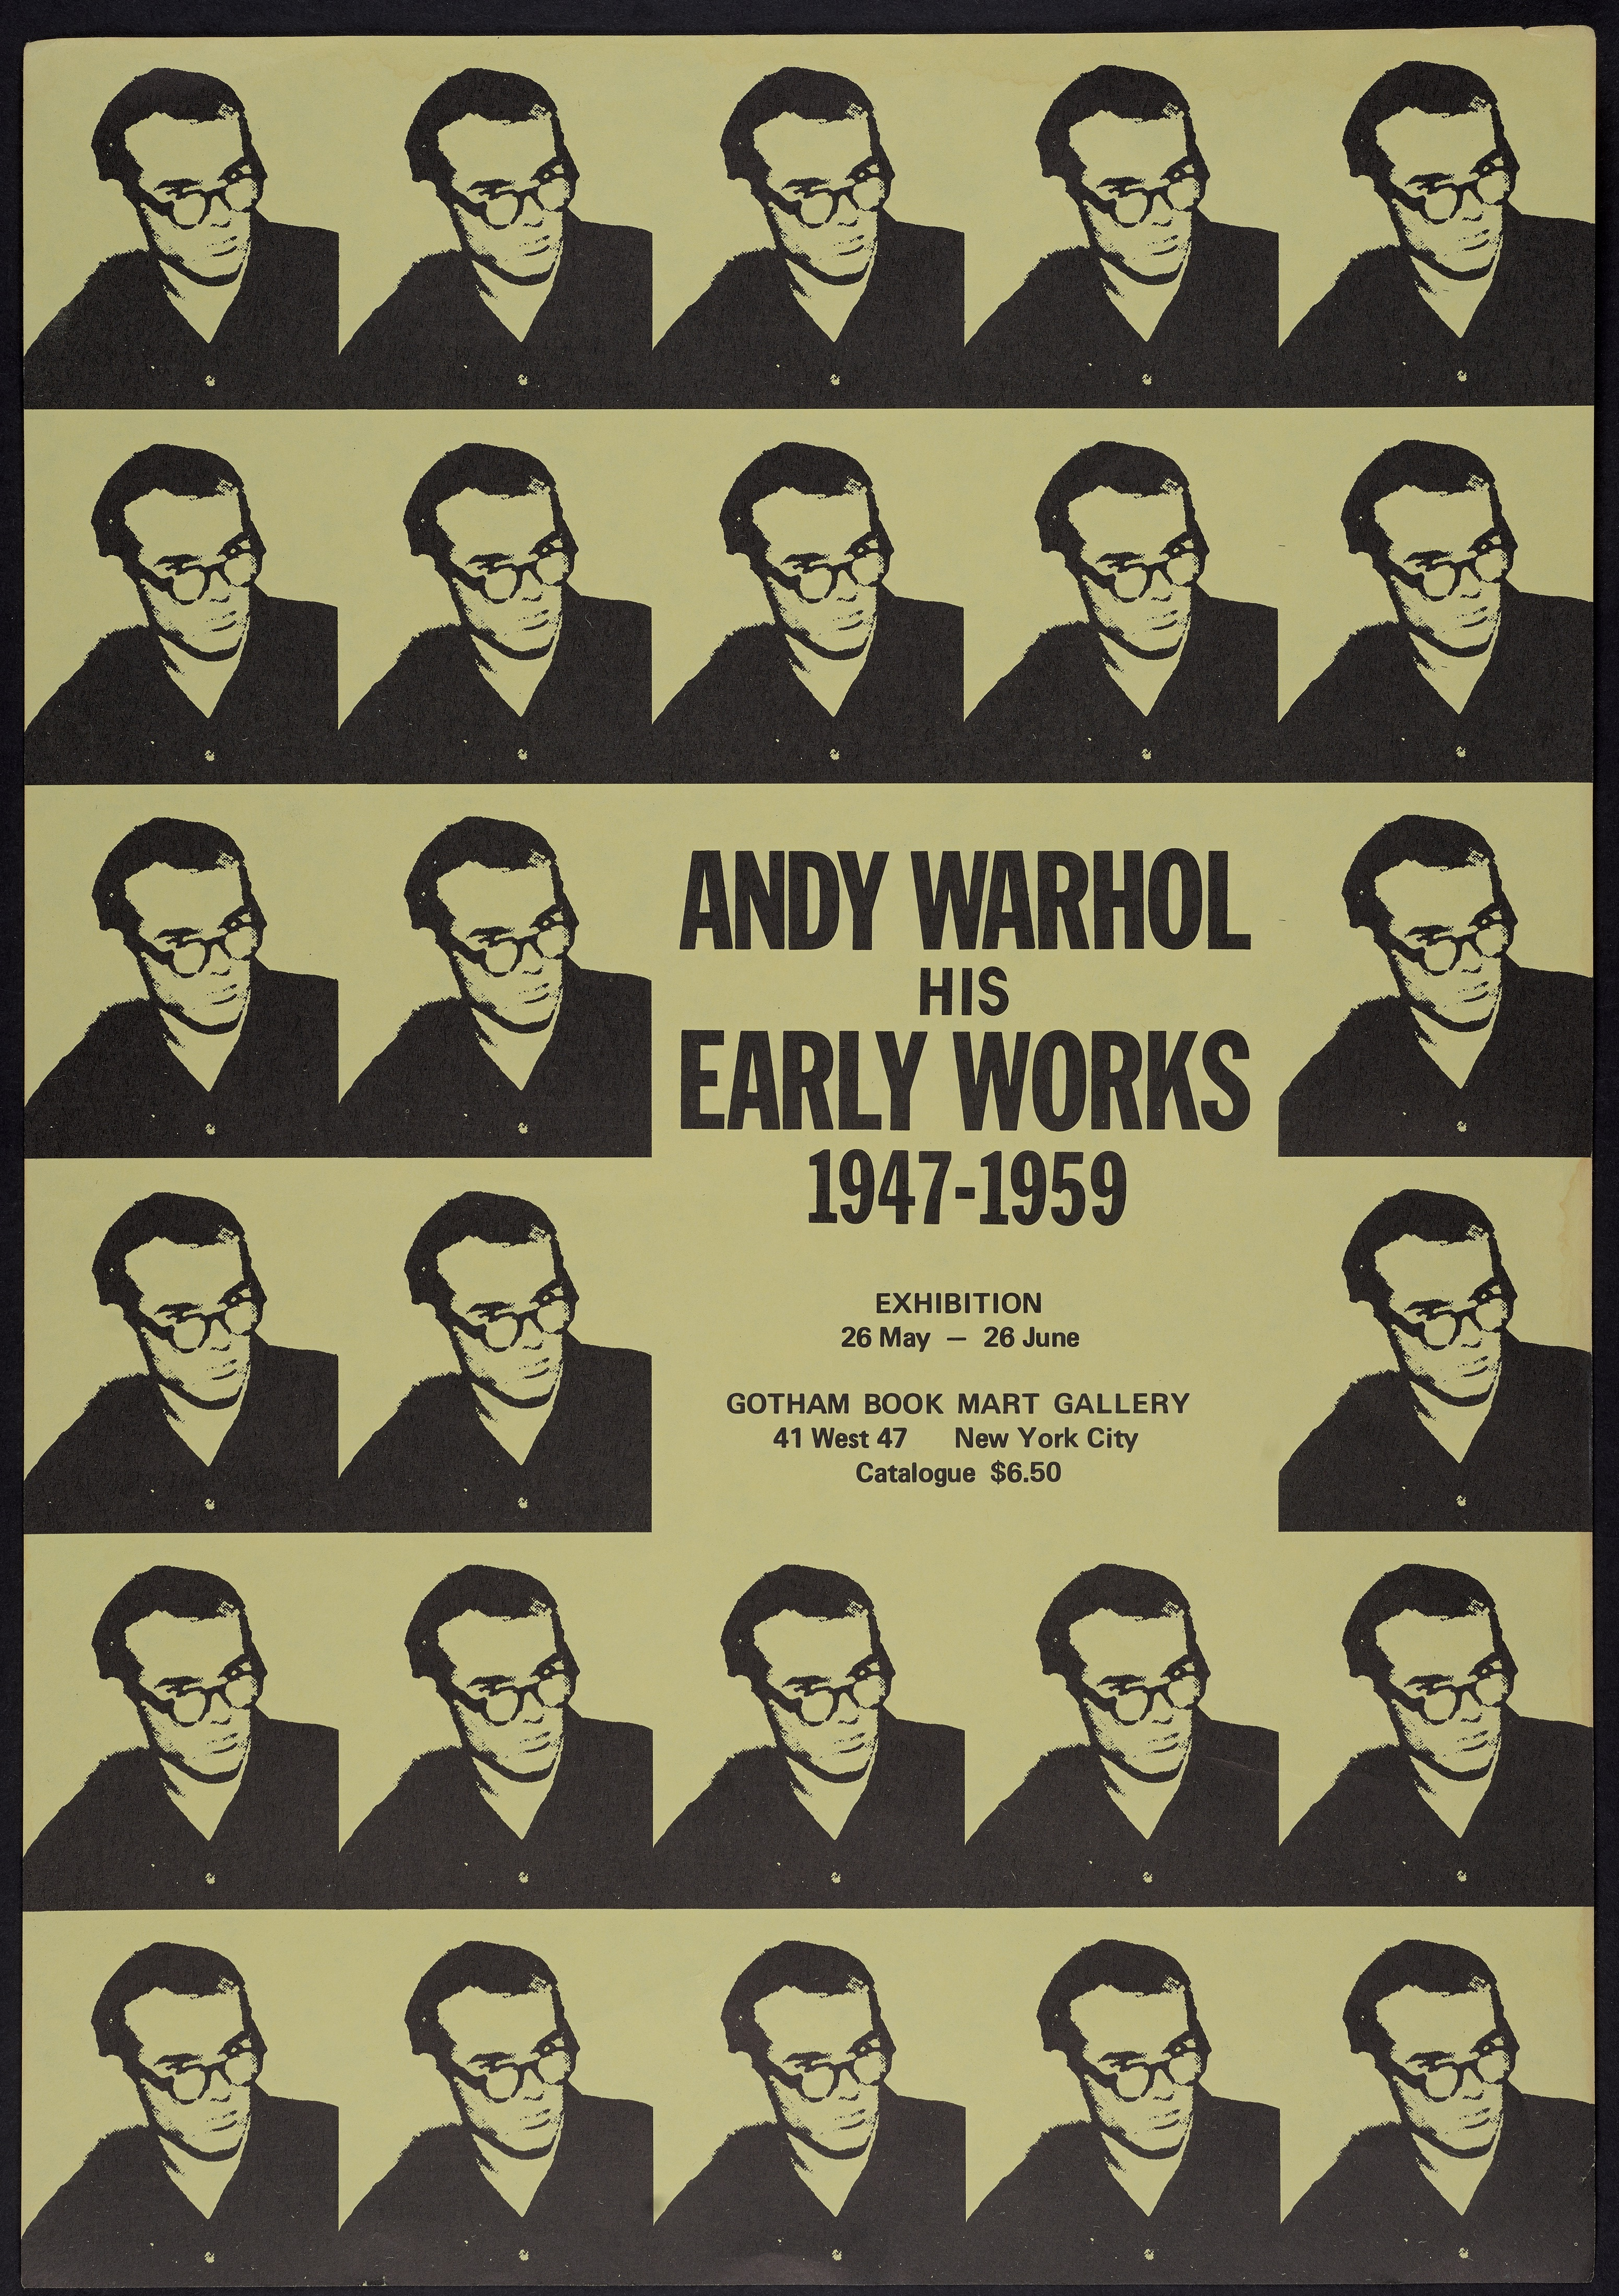 Andy Warhol His Early Works: 1947–1959. New York, Gotham Book Mart Gallery, 1971. Exhibition broadside.